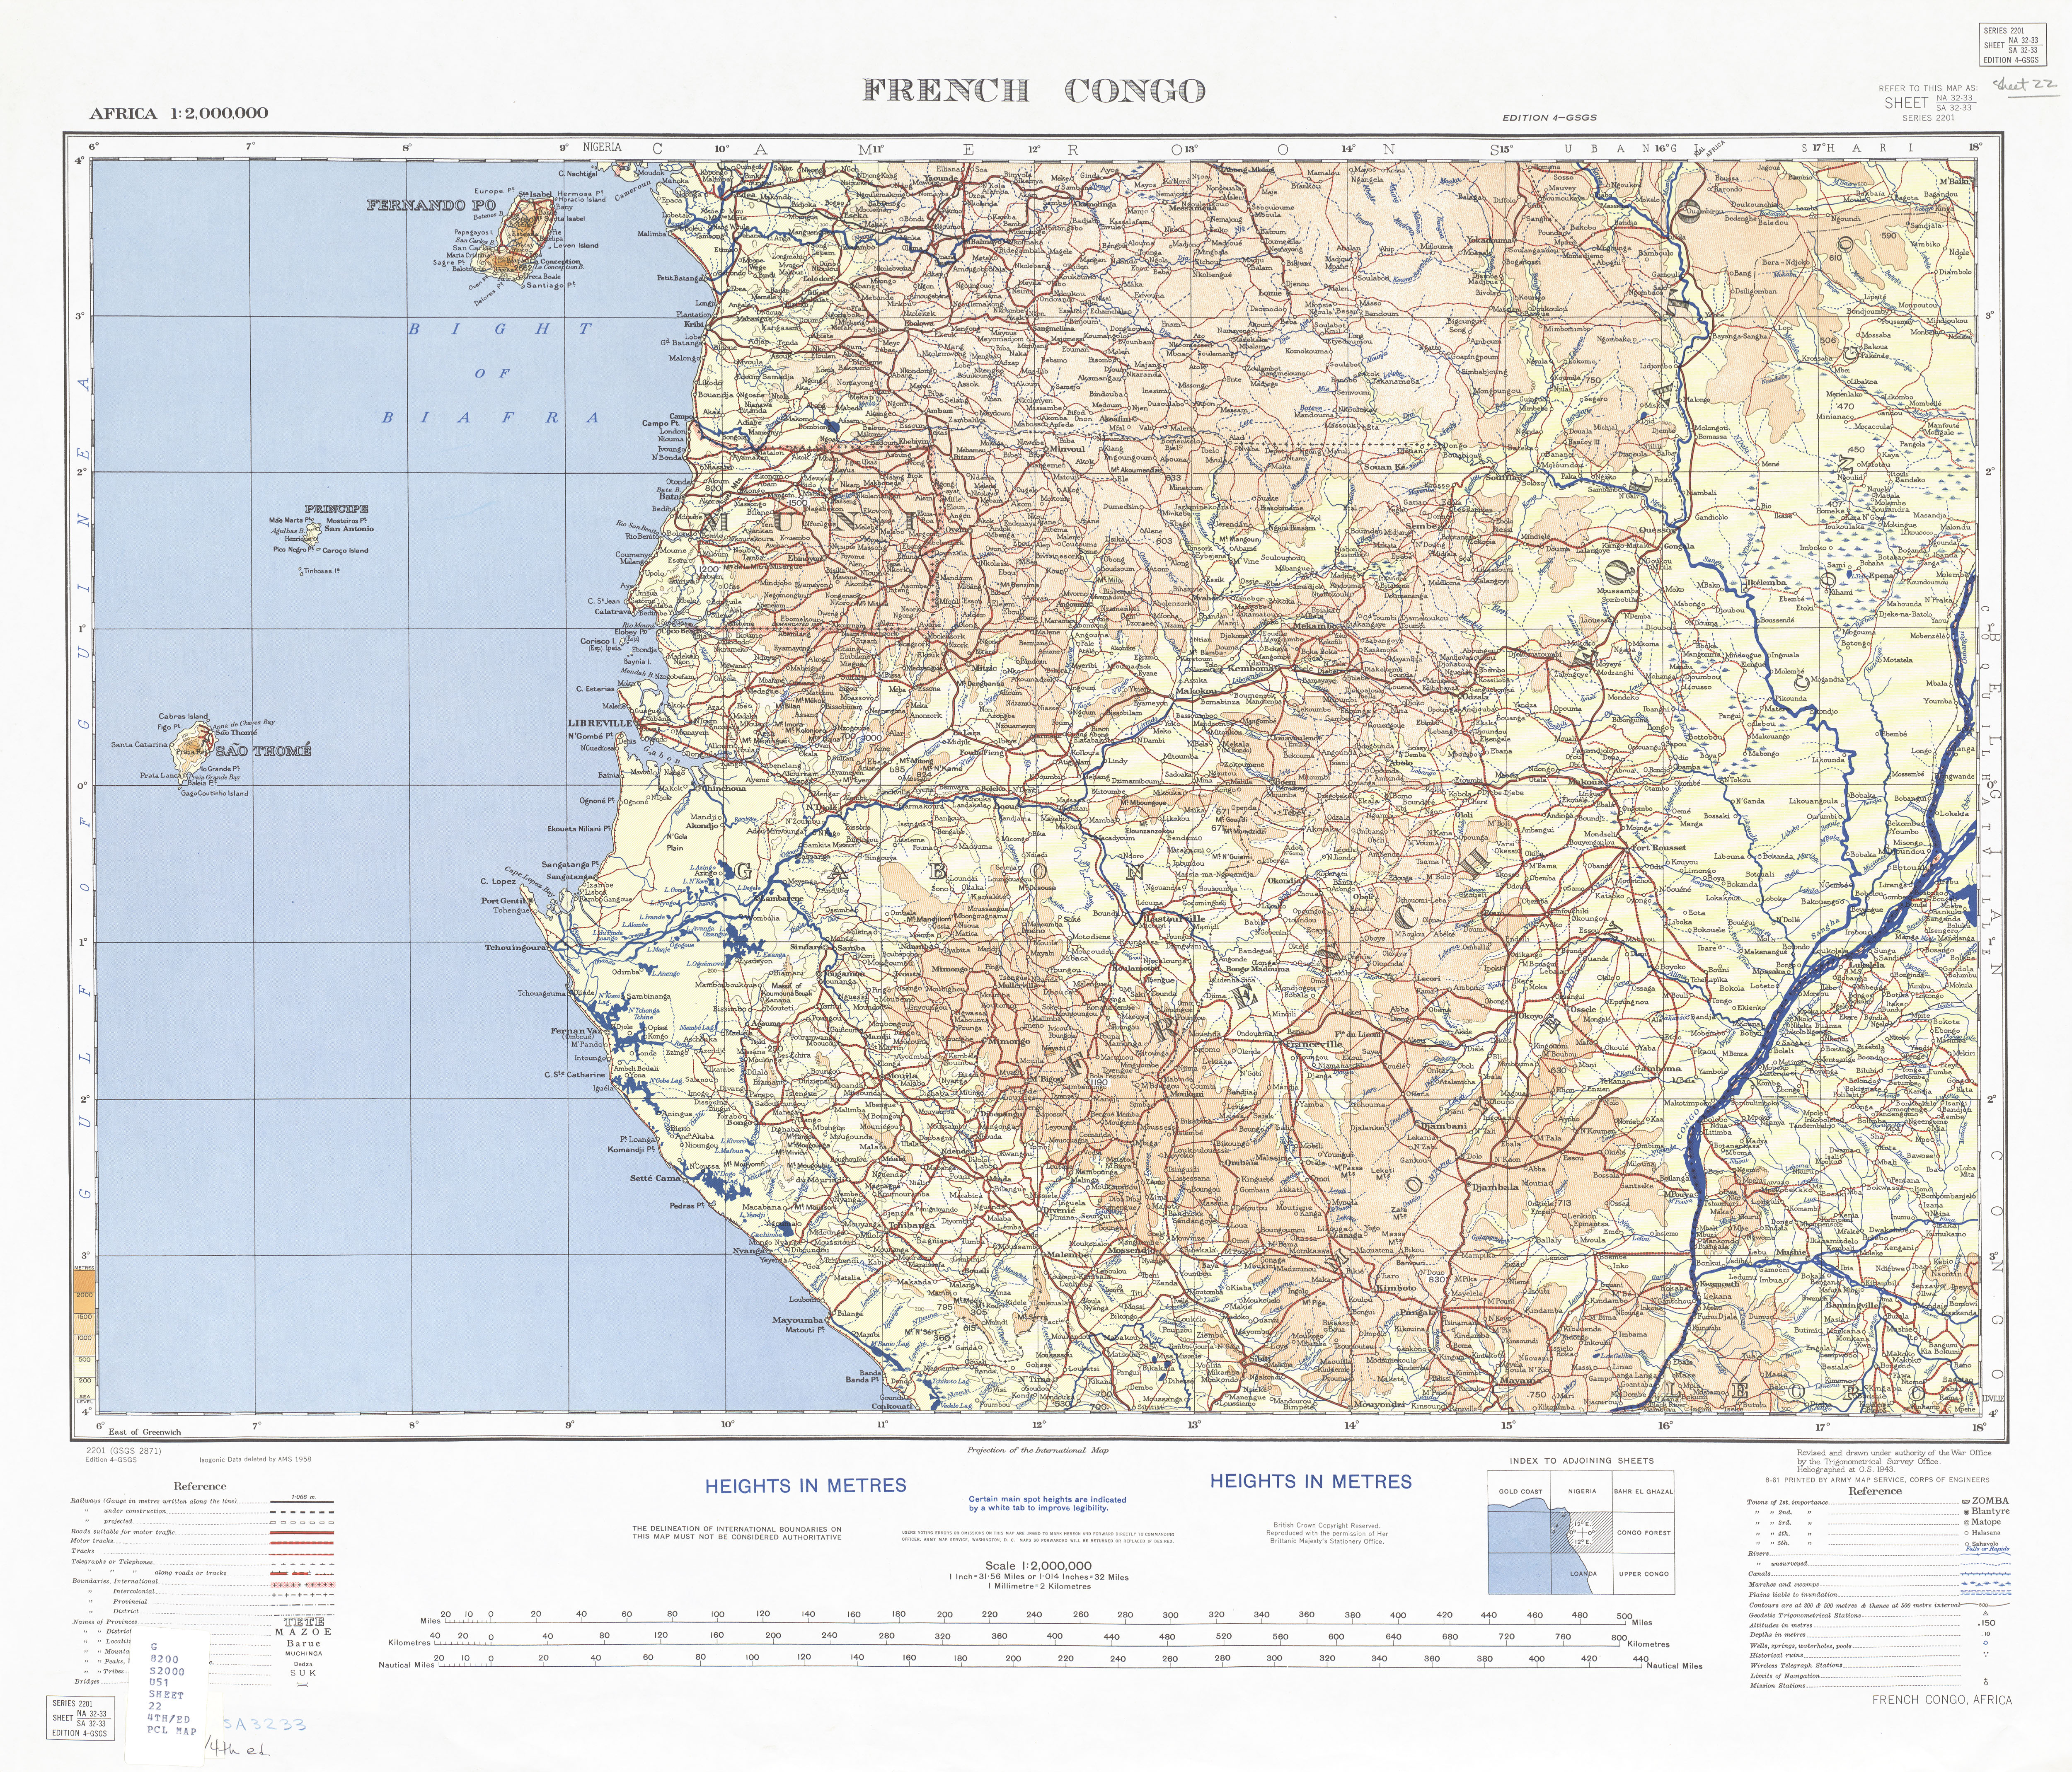 Sao Tome and Principe Maps - Perry-Castañeda Map Collection ... Map Of Rio Muni on map of gozo island, map of hainan island, map of symi, map of isle of pines, map of bhutan, map of tahaa, map of gambia, map of togo, map of algeria, map of tristan da cunha, map of reunion, map of singapore, map of banks island, map of mongolia, map of ascension, map of latvia, map of central african republic, map of kalymnos, map of southwest nigeria, map of bahrain,